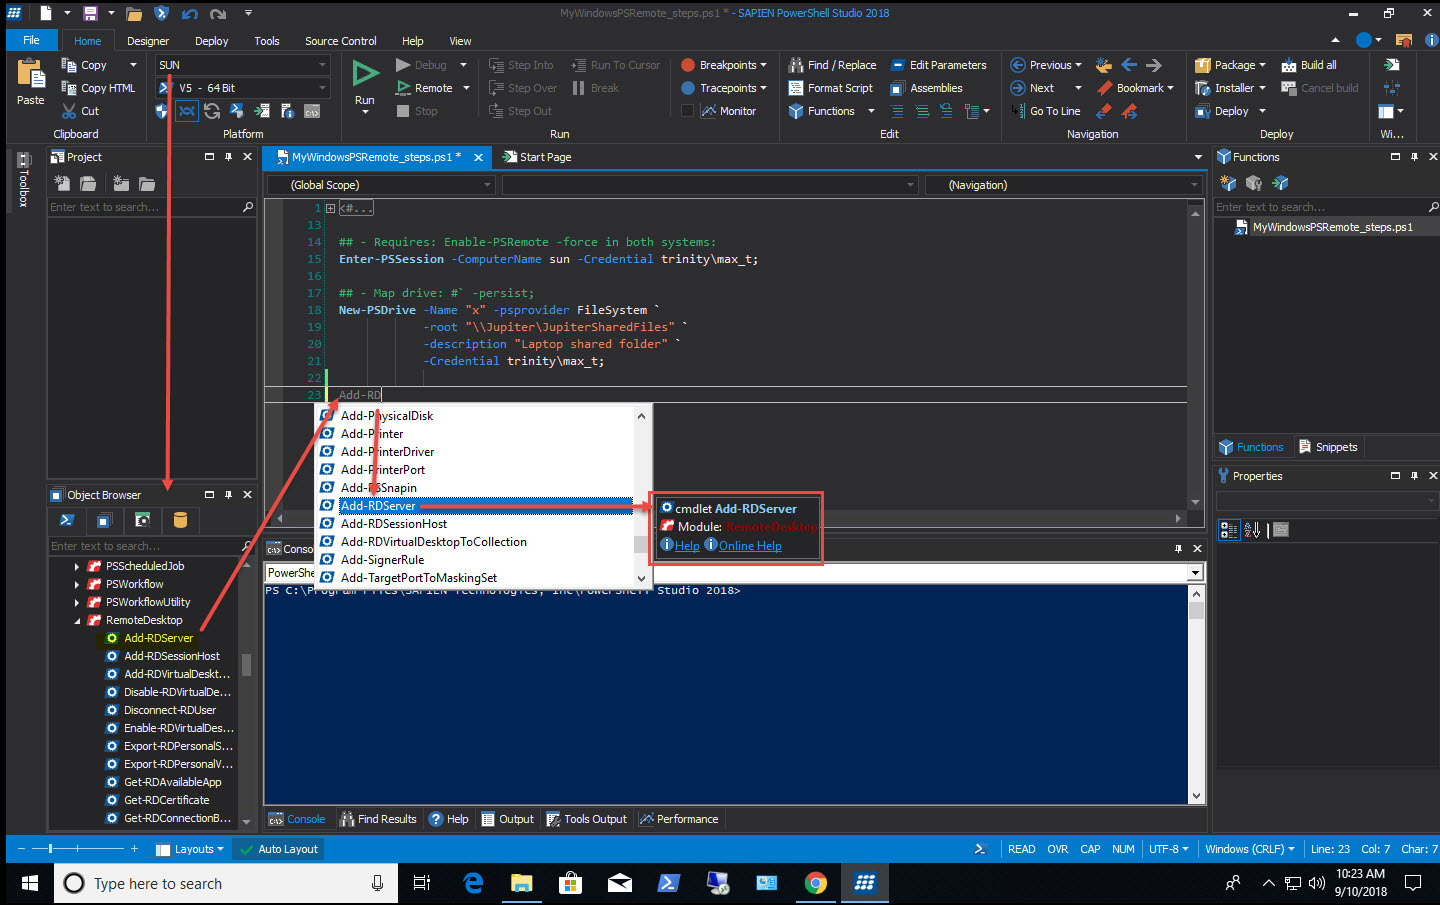 PowerShell Studio: Working with Remote Systems (Part 1